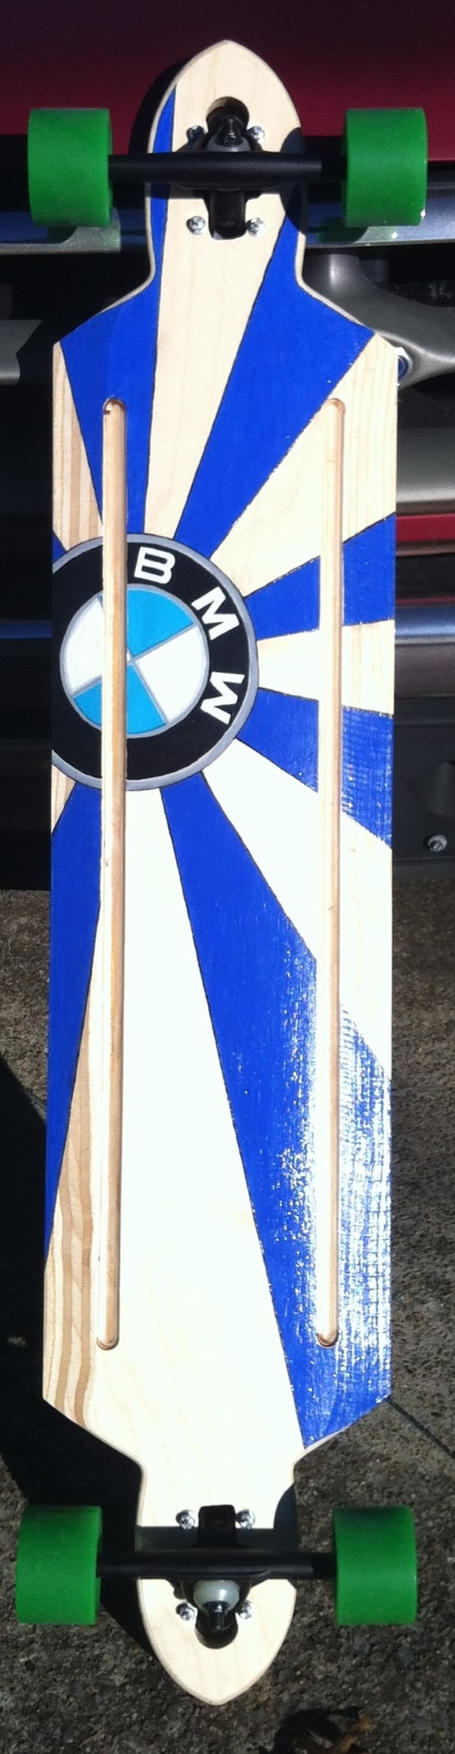 BMW longboard by whereisthefall